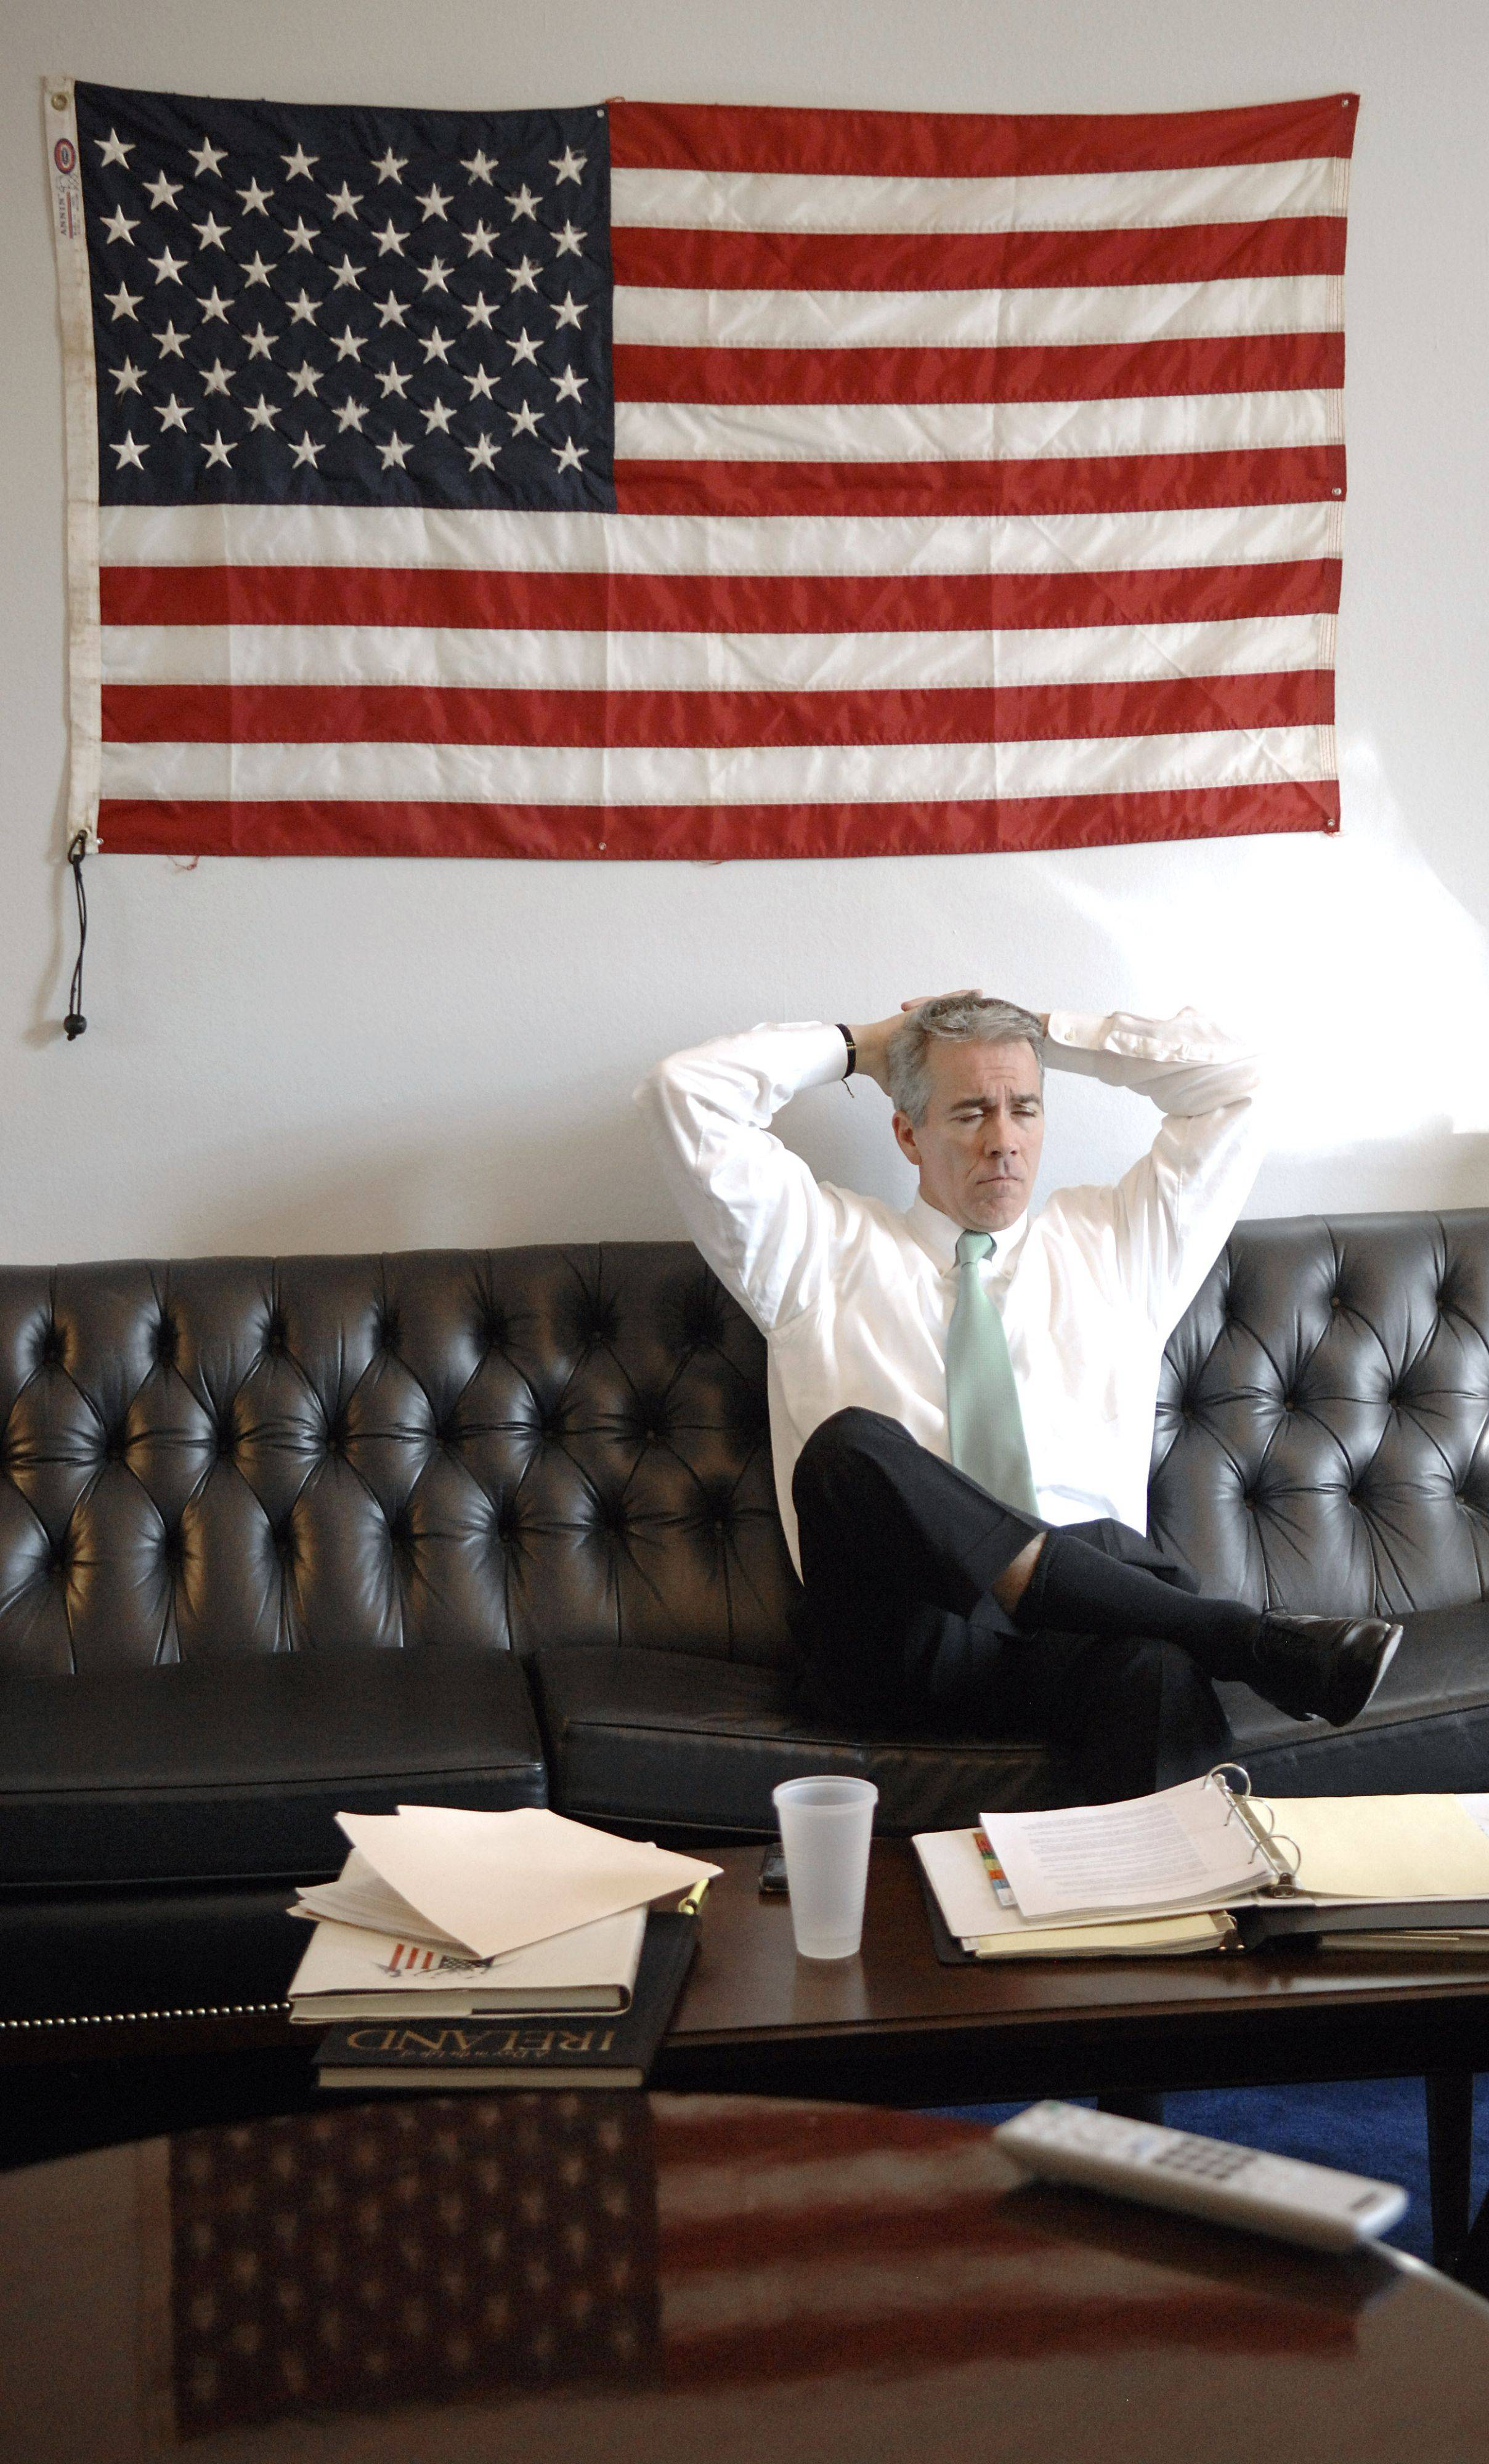 Illinois congressman Joe Walsh listens to briefs before attending a meeting with the Committee on Homeland Security on Wednesday, March 2 in Washington D.C.